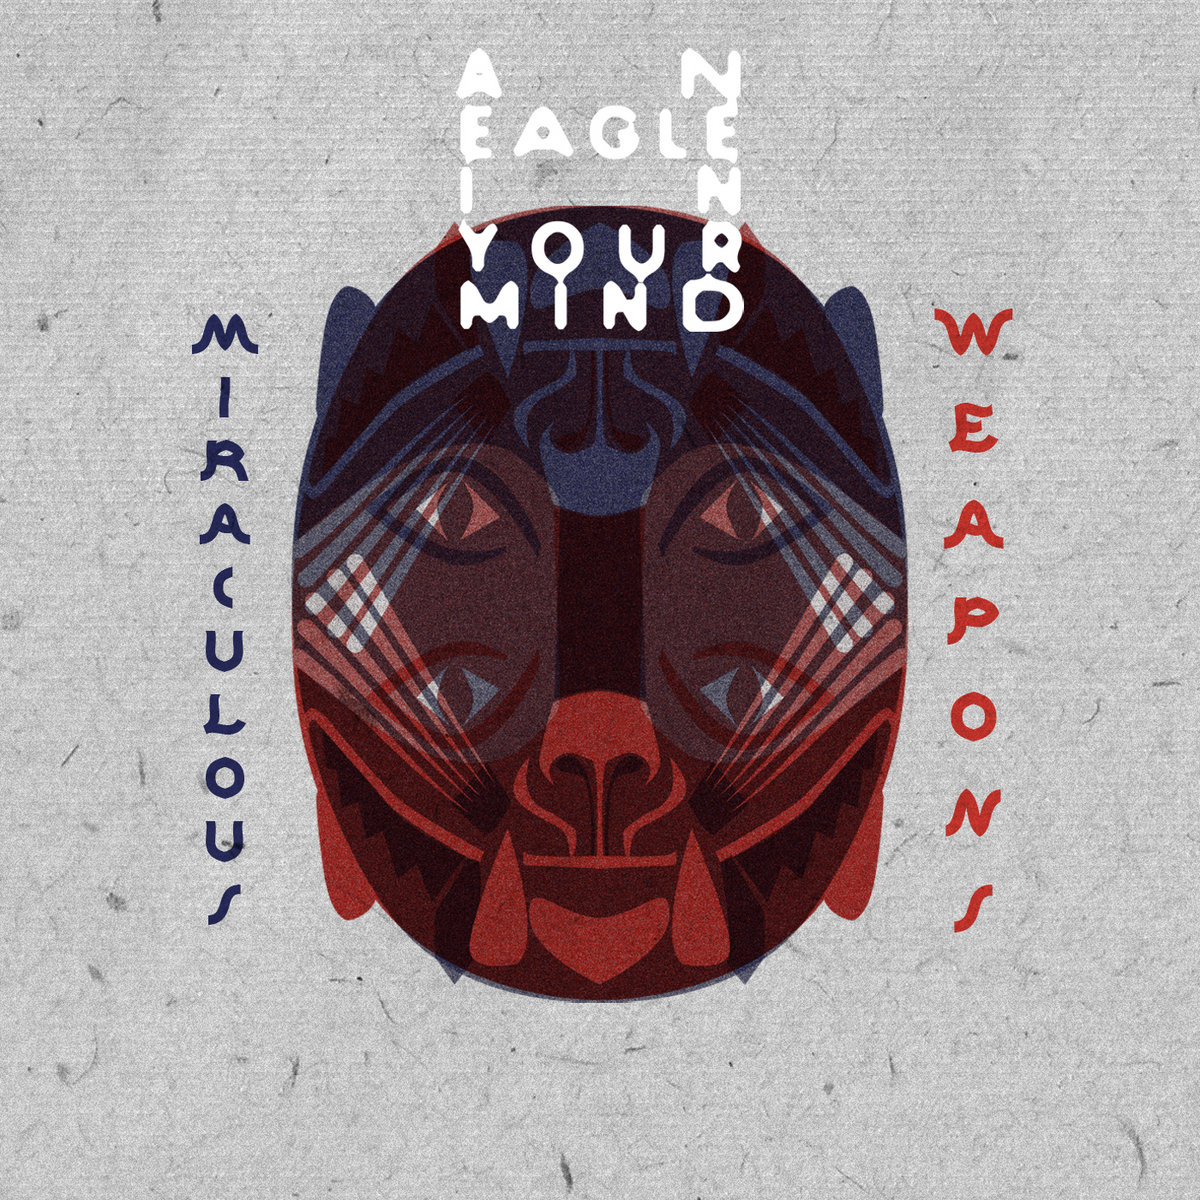 Miraculous WeaponsAlbumCover